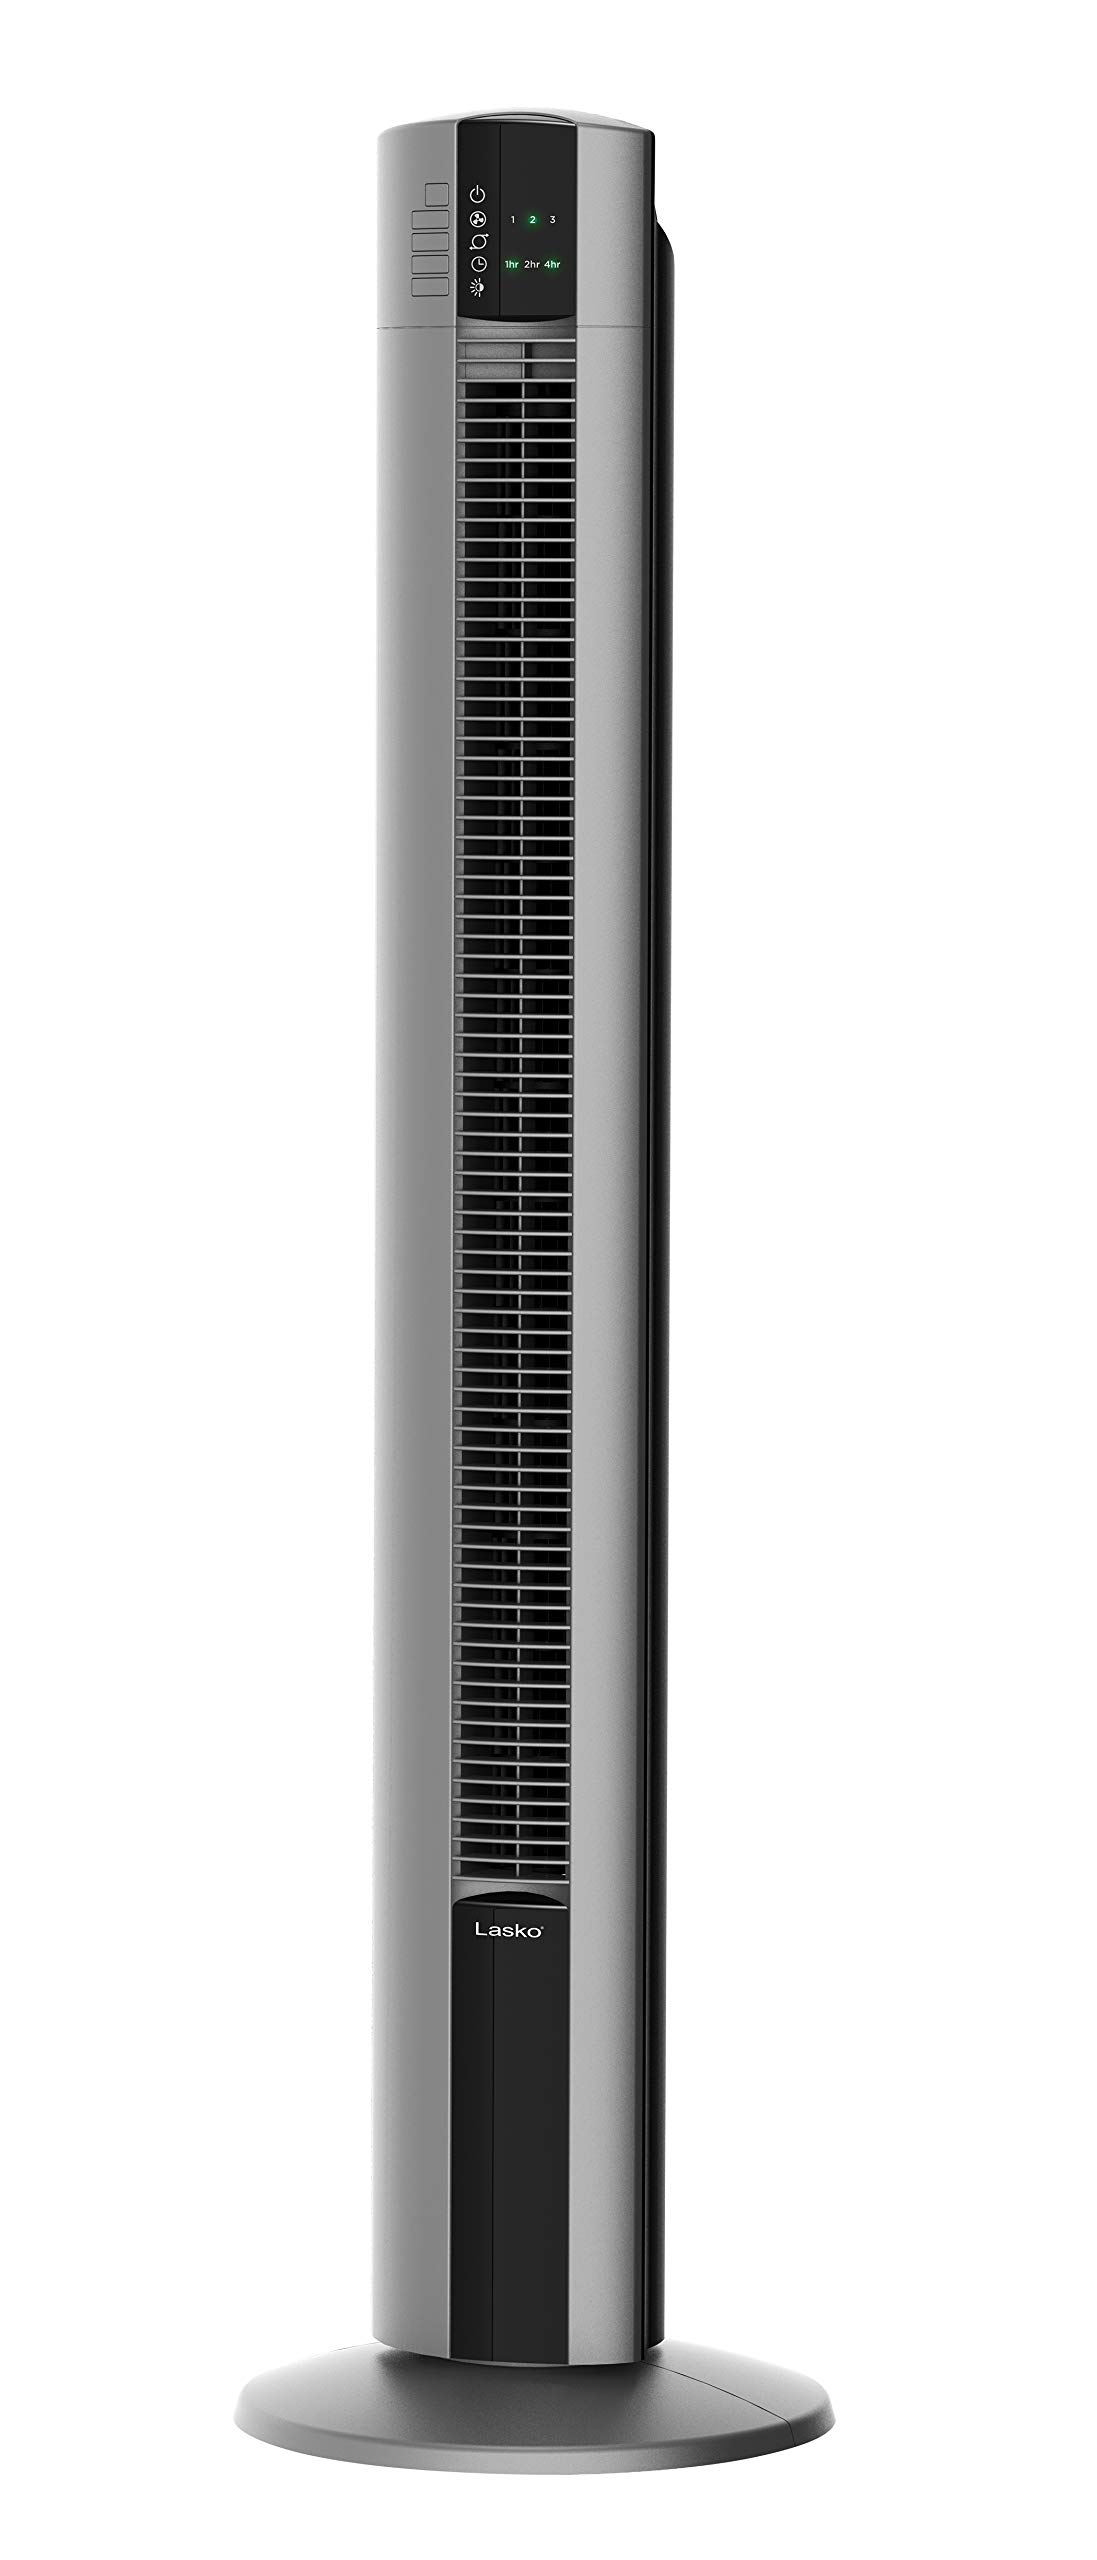 Lasko T48314 Performance 48-in. Tower Fan with Remote Control, T48311 by Lasko